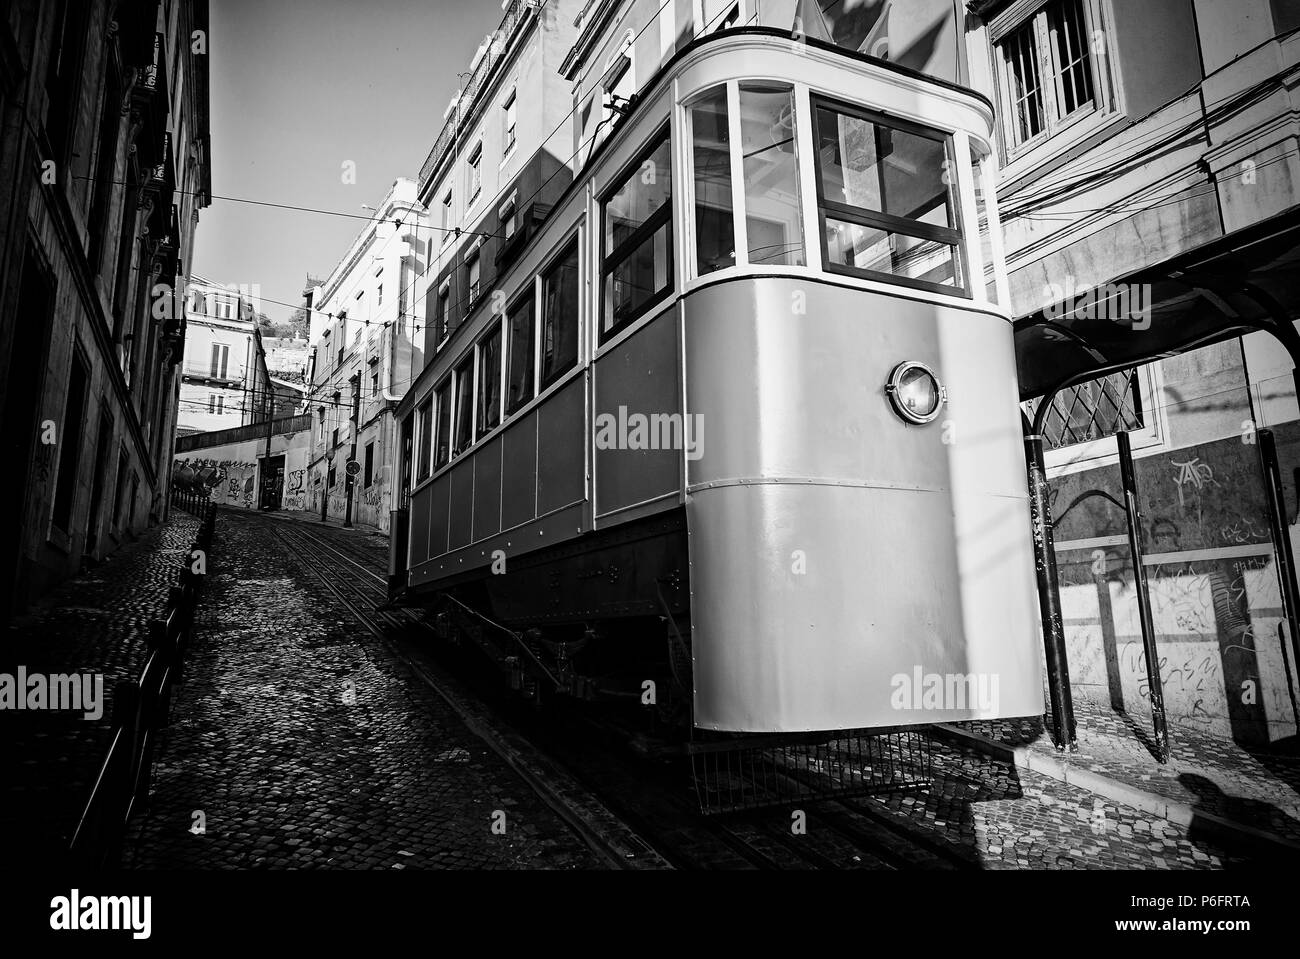 Ancient and Old Lisbon tram, detail of an ancient means of transportation around the city, monument of Lisbon - Stock Image